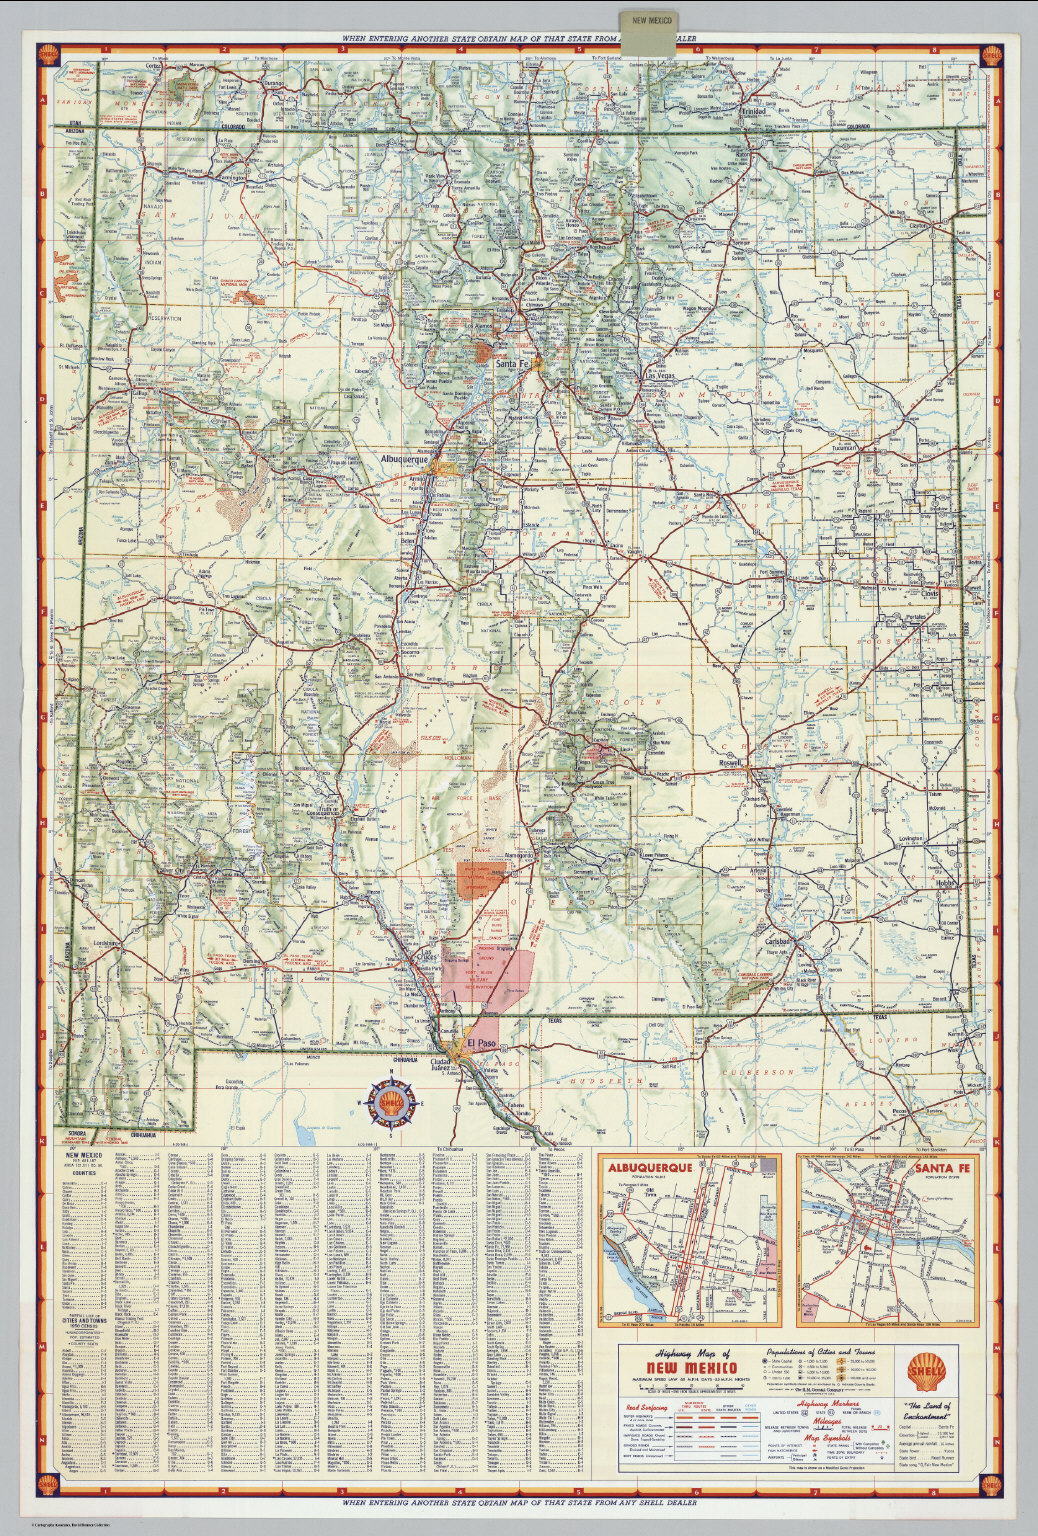 Shell Highway Map of New Mexico David Rumsey Historical Map